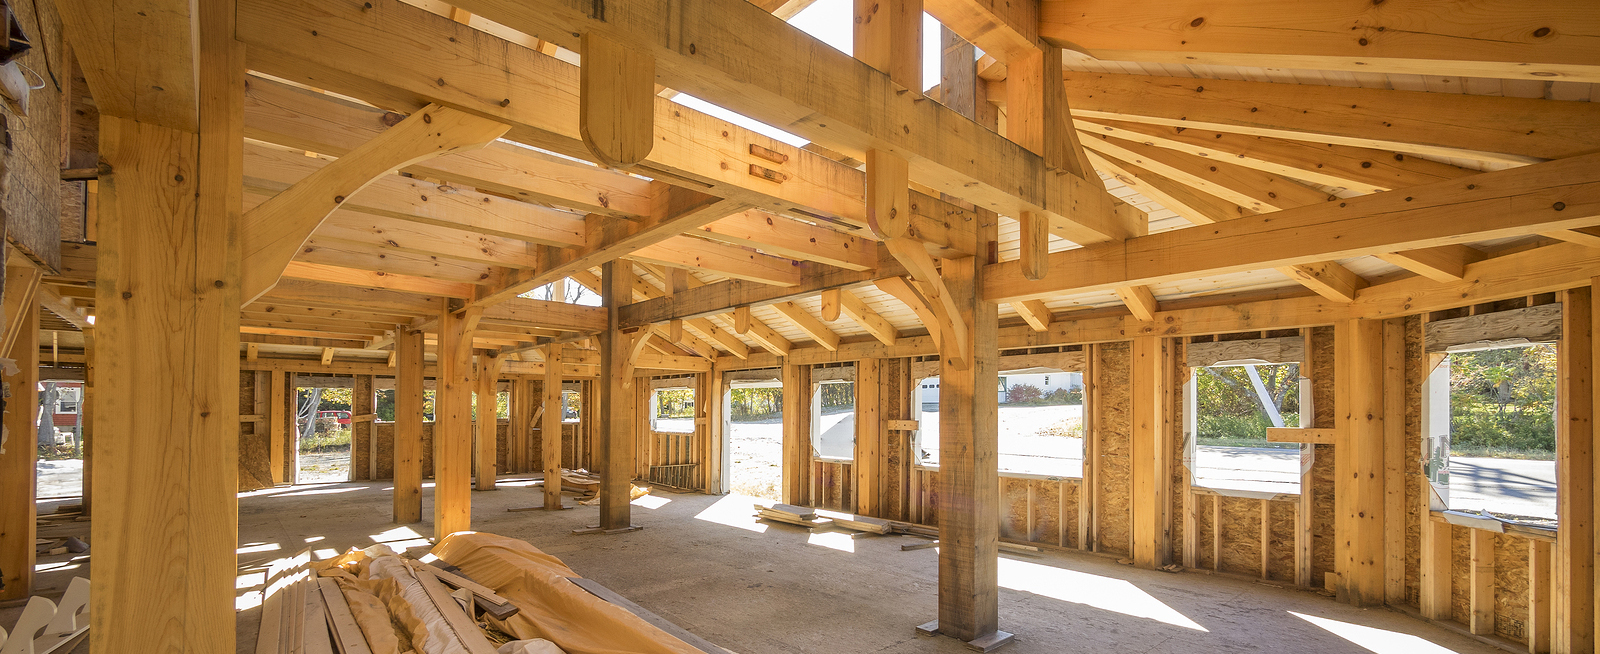 Post and beam interior construction used for large open spaces